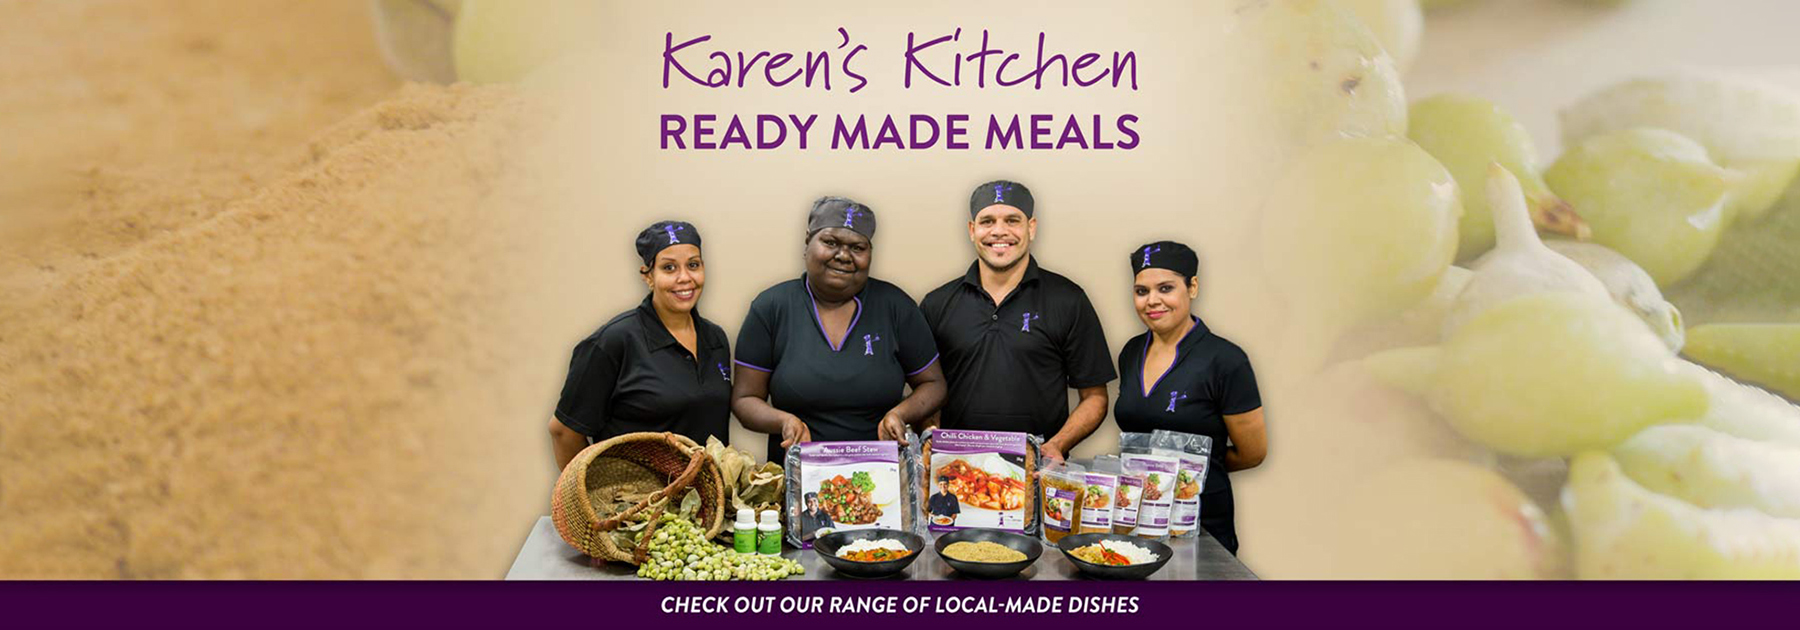 Karen's Kitchen Ready Made Meals